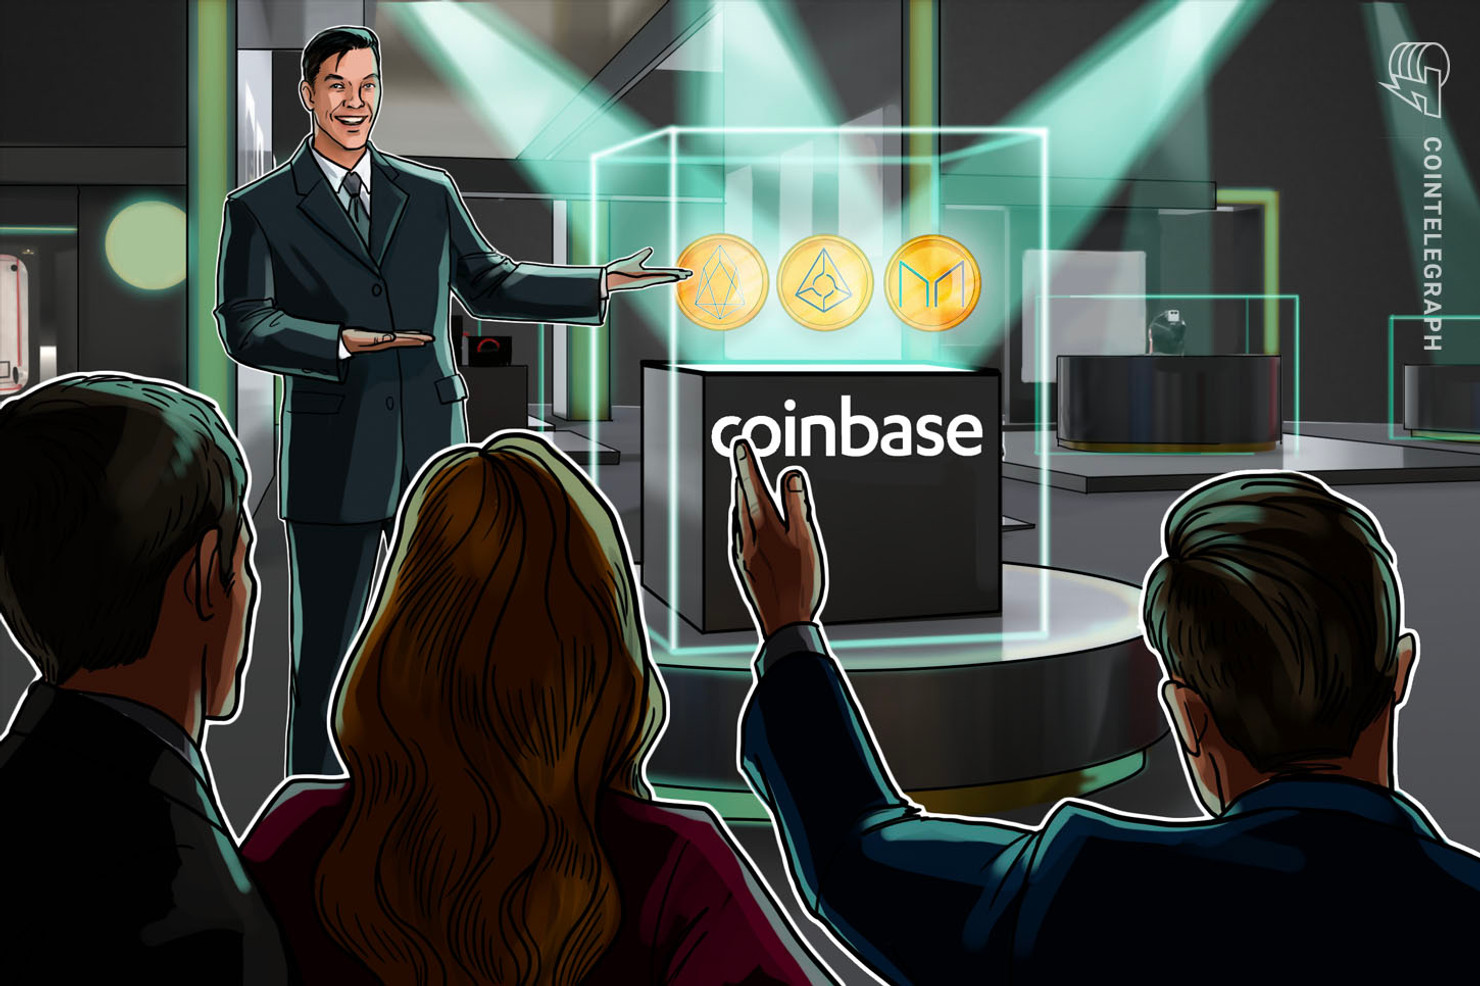 Coinbase Pro Adds Support for Three New Tokens: EOS, Augur and Maker